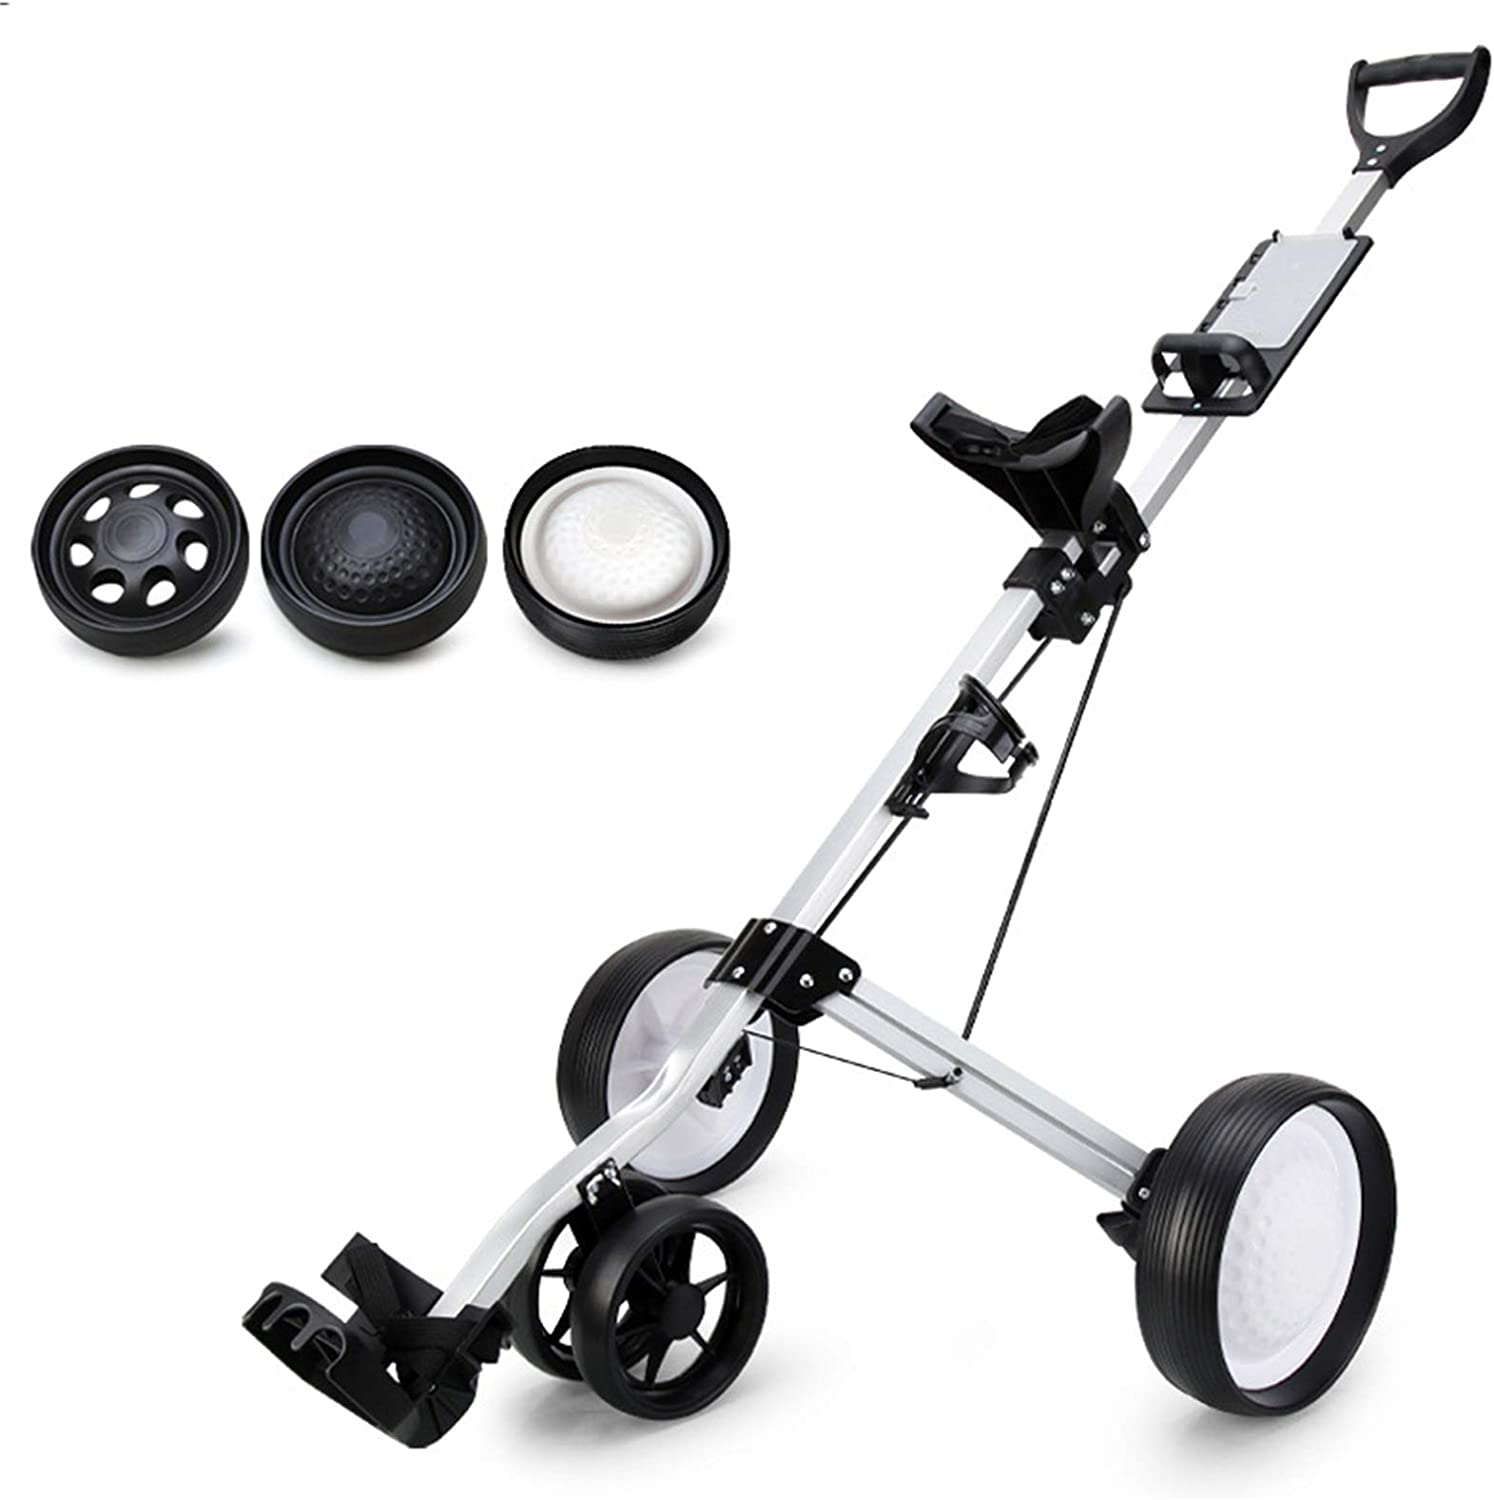 WJY Golf Ranking TOP20 Push Cart Lightweight Collapsible Year-end annual account Car Compact